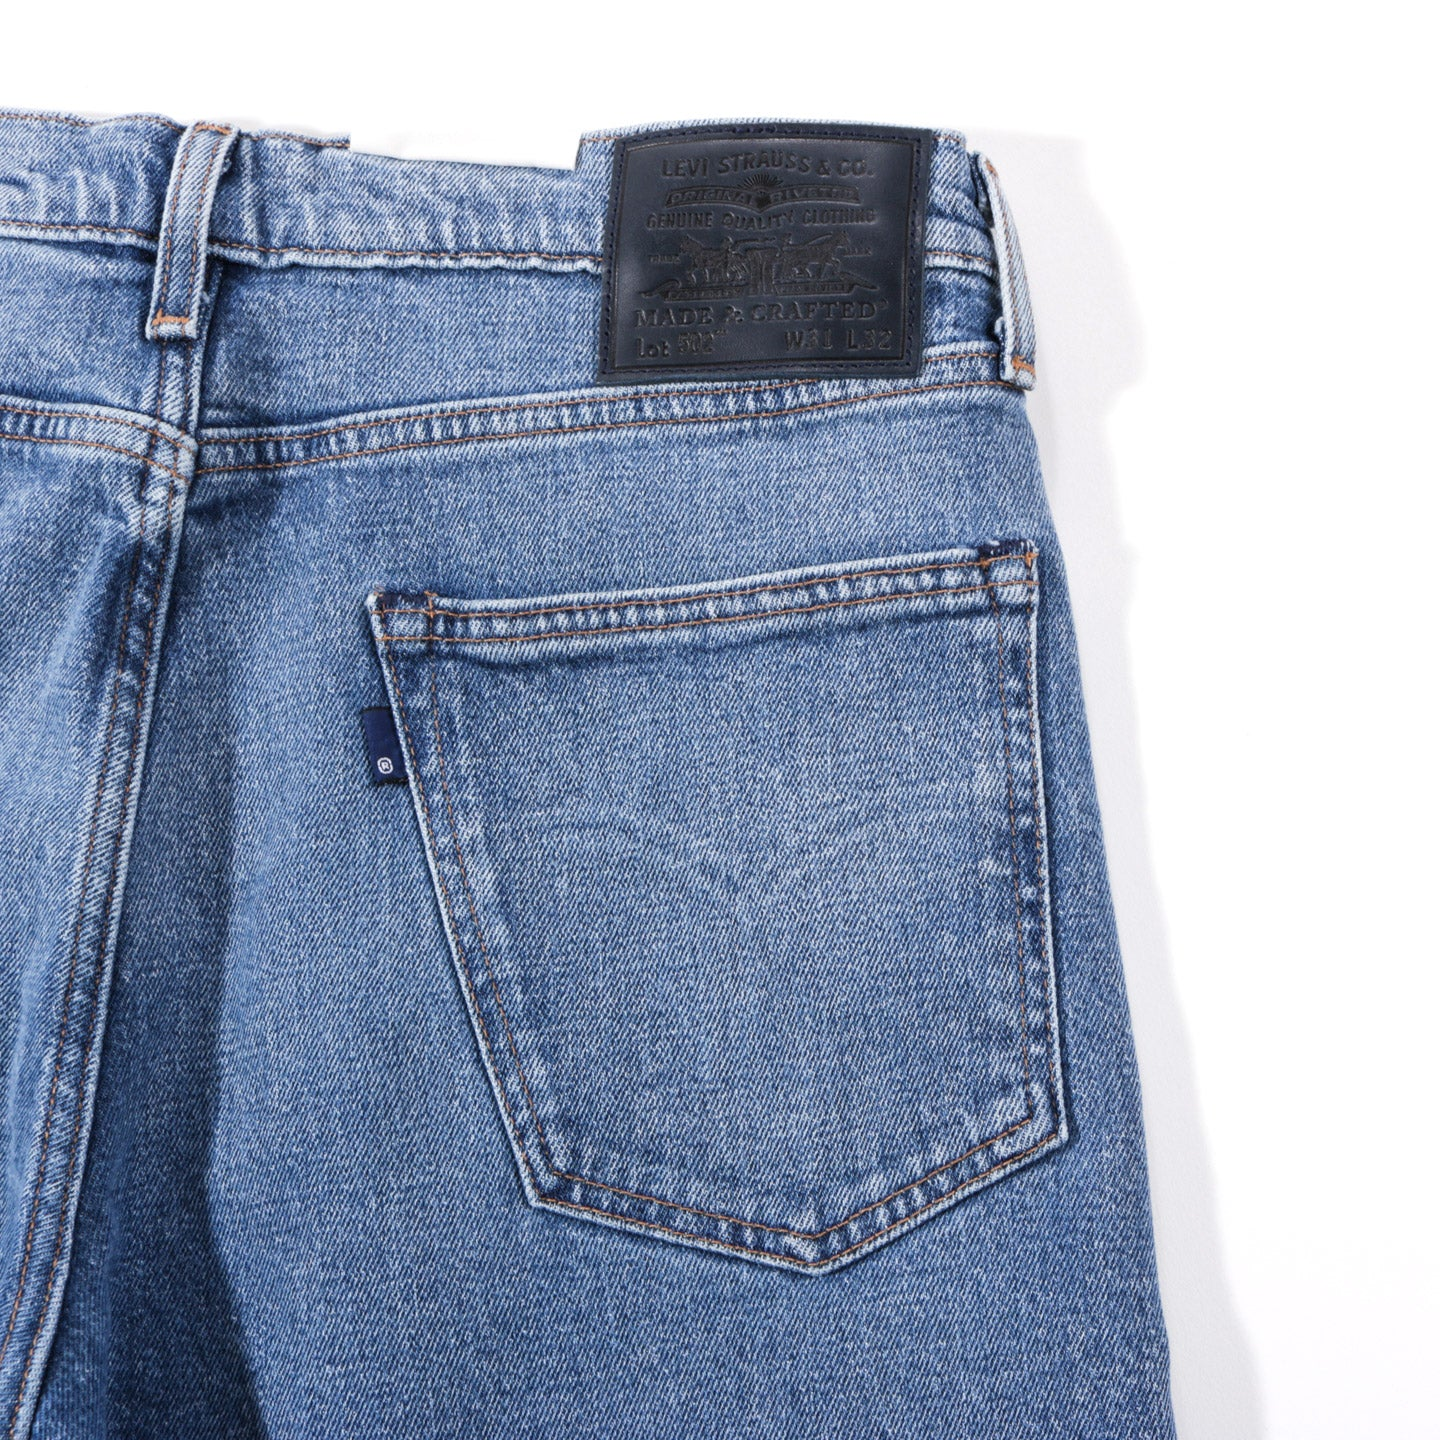 LEVI'S MADE & CRAFTED 502 LUDLOW